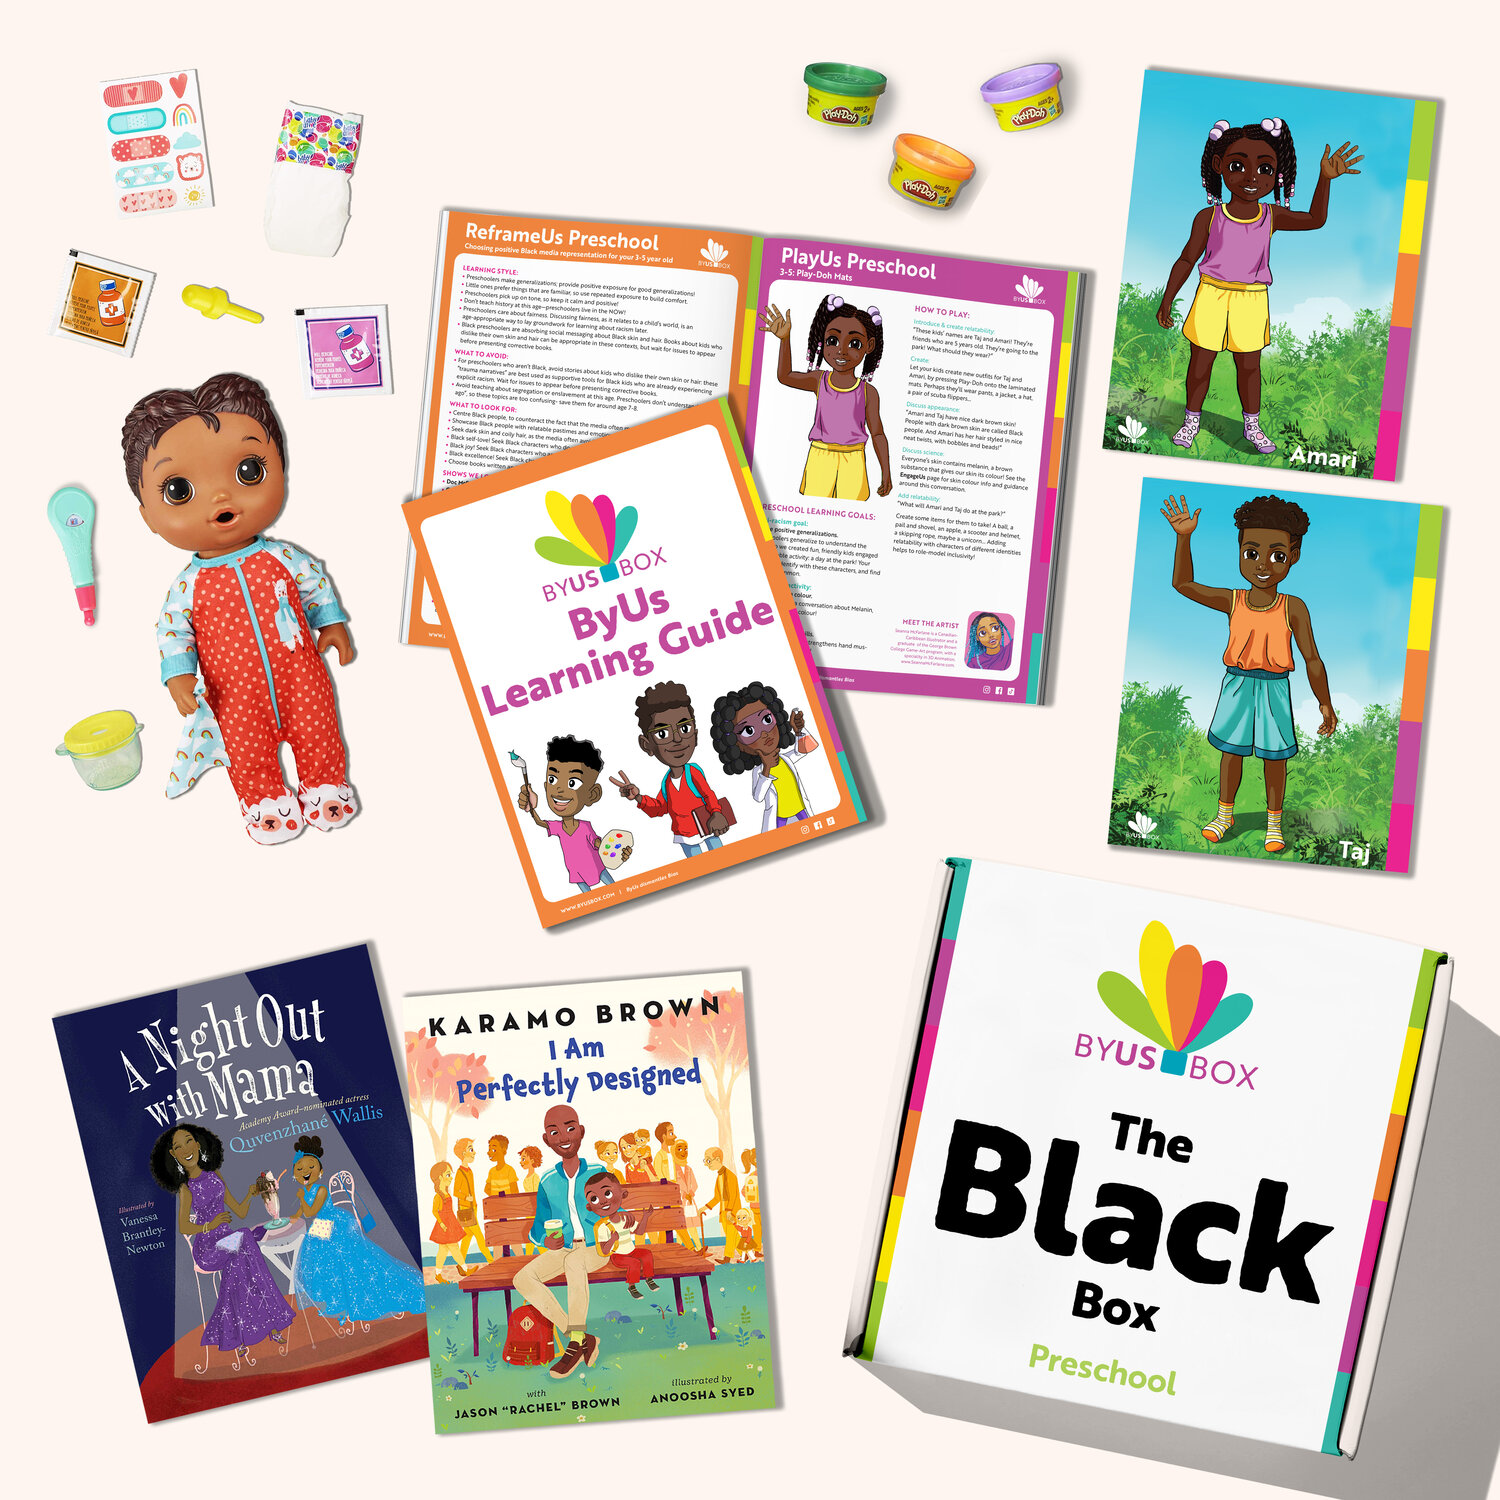 ByUs Box - Sample Items (actual items may differ slightly but will be equivalent in value) - Black Box Preschool - November 2020. Composite image made by Zainab's Echo